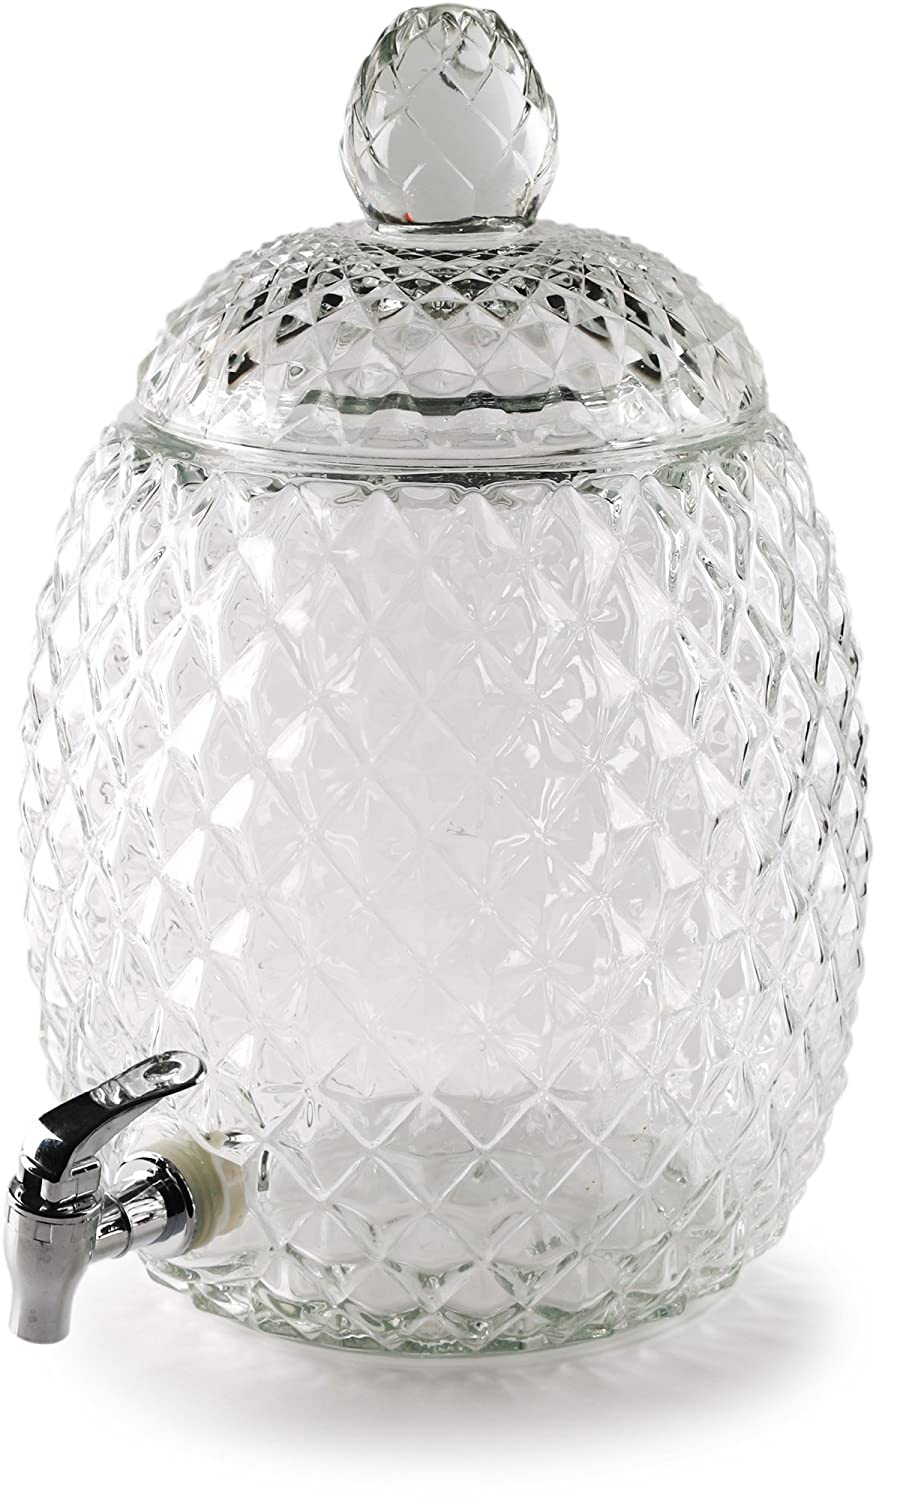 Circleware 98339 Sun Tea Jar Beverage Dispenser and Glass Lid, Party Entertainment Home Kitchen Glassware Water Pitcher for Juice, Beer, Kombucha & Cold Drinks, Lead-Free, Huge 2.1 Gallon Pineapple